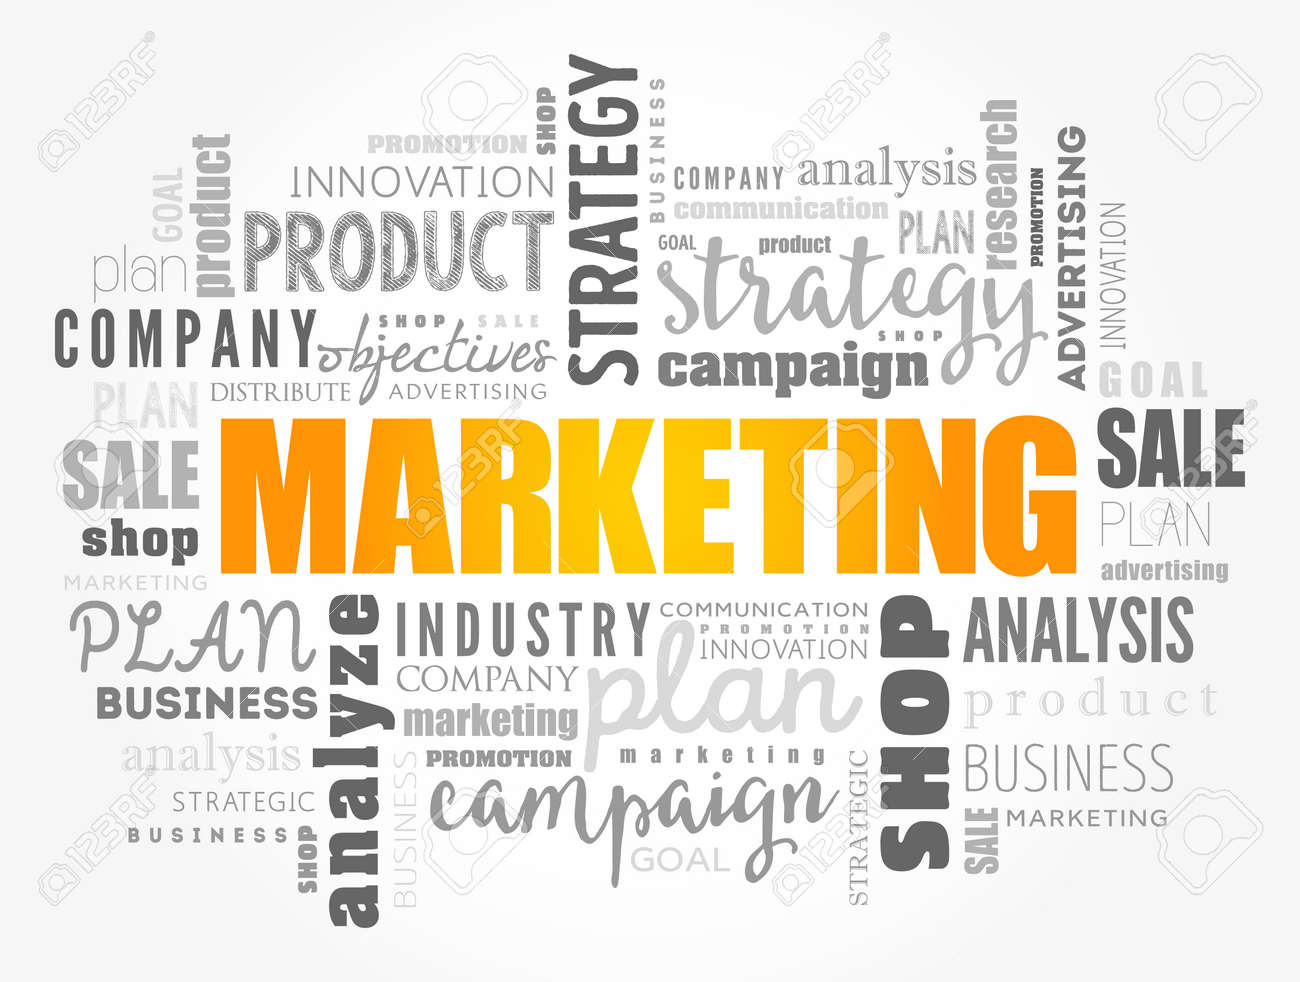 Marketing word cloud collage, business concept background - 157875146